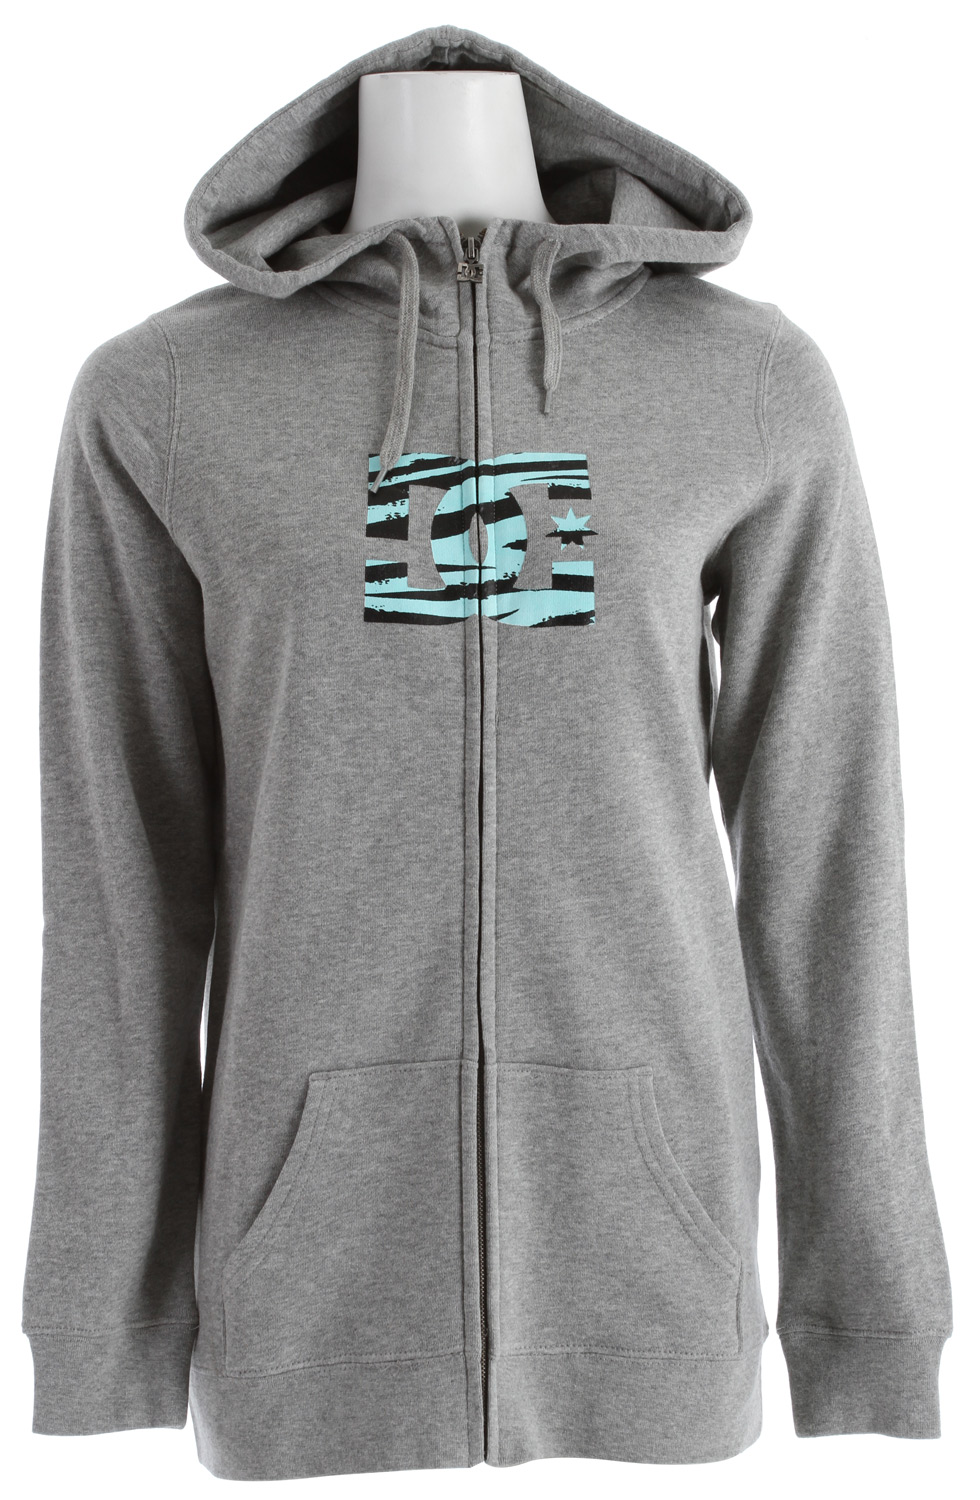 Skateboard Stay warm when the cold hits and the snow flies with this great, long-fit, fully front zippered DC Snow Fill FZ Hoodie for women. Made of a warm and cozy 80% cotton, 20% polyester blend, you'll keep the cold out while you stay warm inside it, and the colder it is, the more you'll appreciate its midweight insulation. Wear the DC Snow Fill Hoodie as an outer jacket itself to school, around town, or anywhere you want to be warm. Even wear it under a shell for increased warmth and water resistance, either way, you'll be as toasty as you want to be.  Long fit fleece with full zip hood   80% cotton / 20% polyester - $32.95